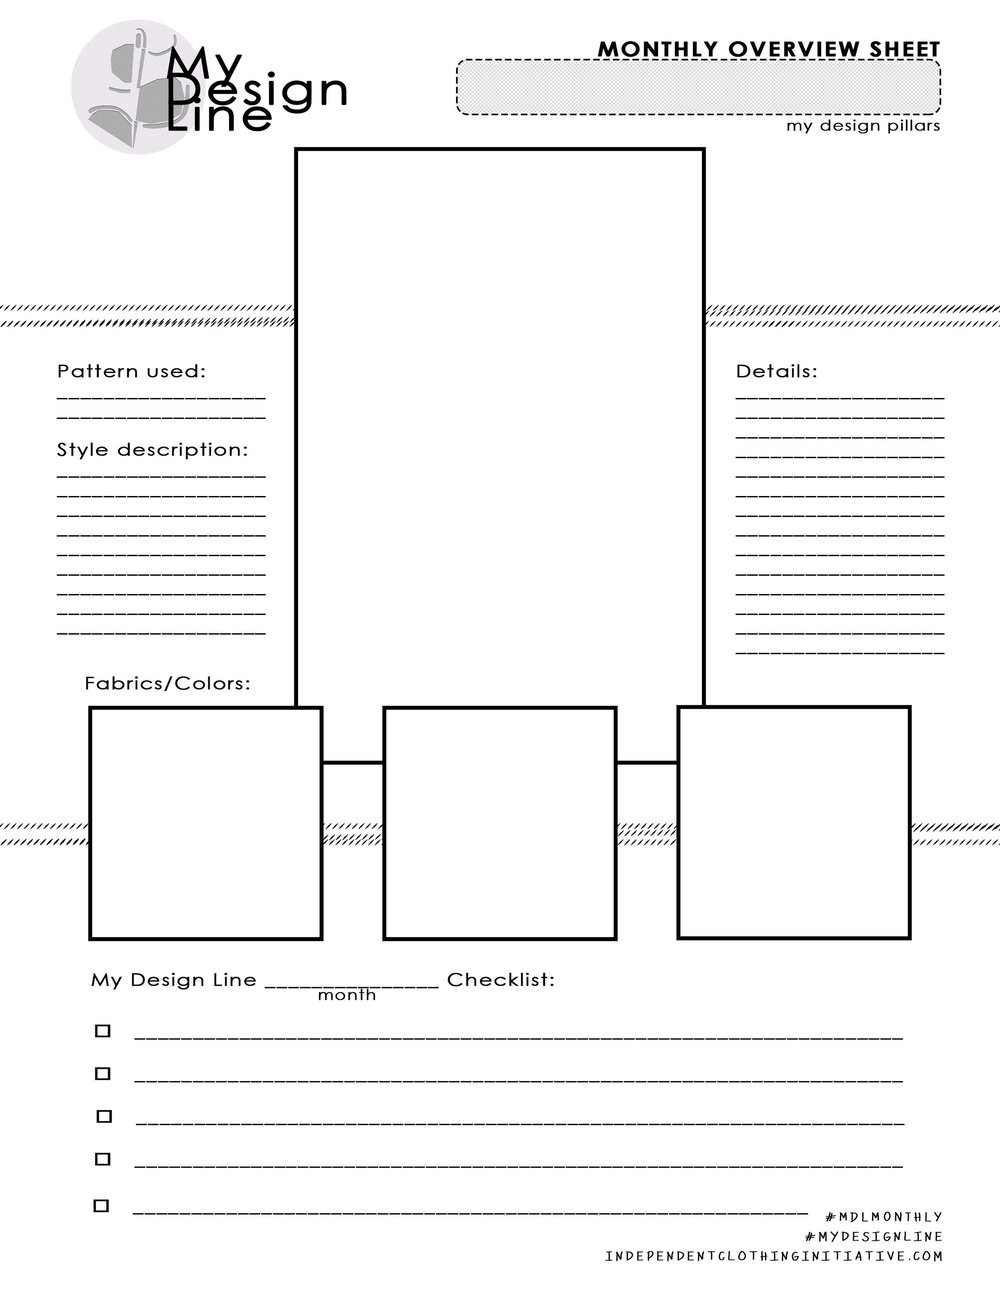 Plan Each Month Out In Detail! - You can be as specific here as you want to be. The idea is map out how this garment will fit into your design line for the year, and then to get to work!